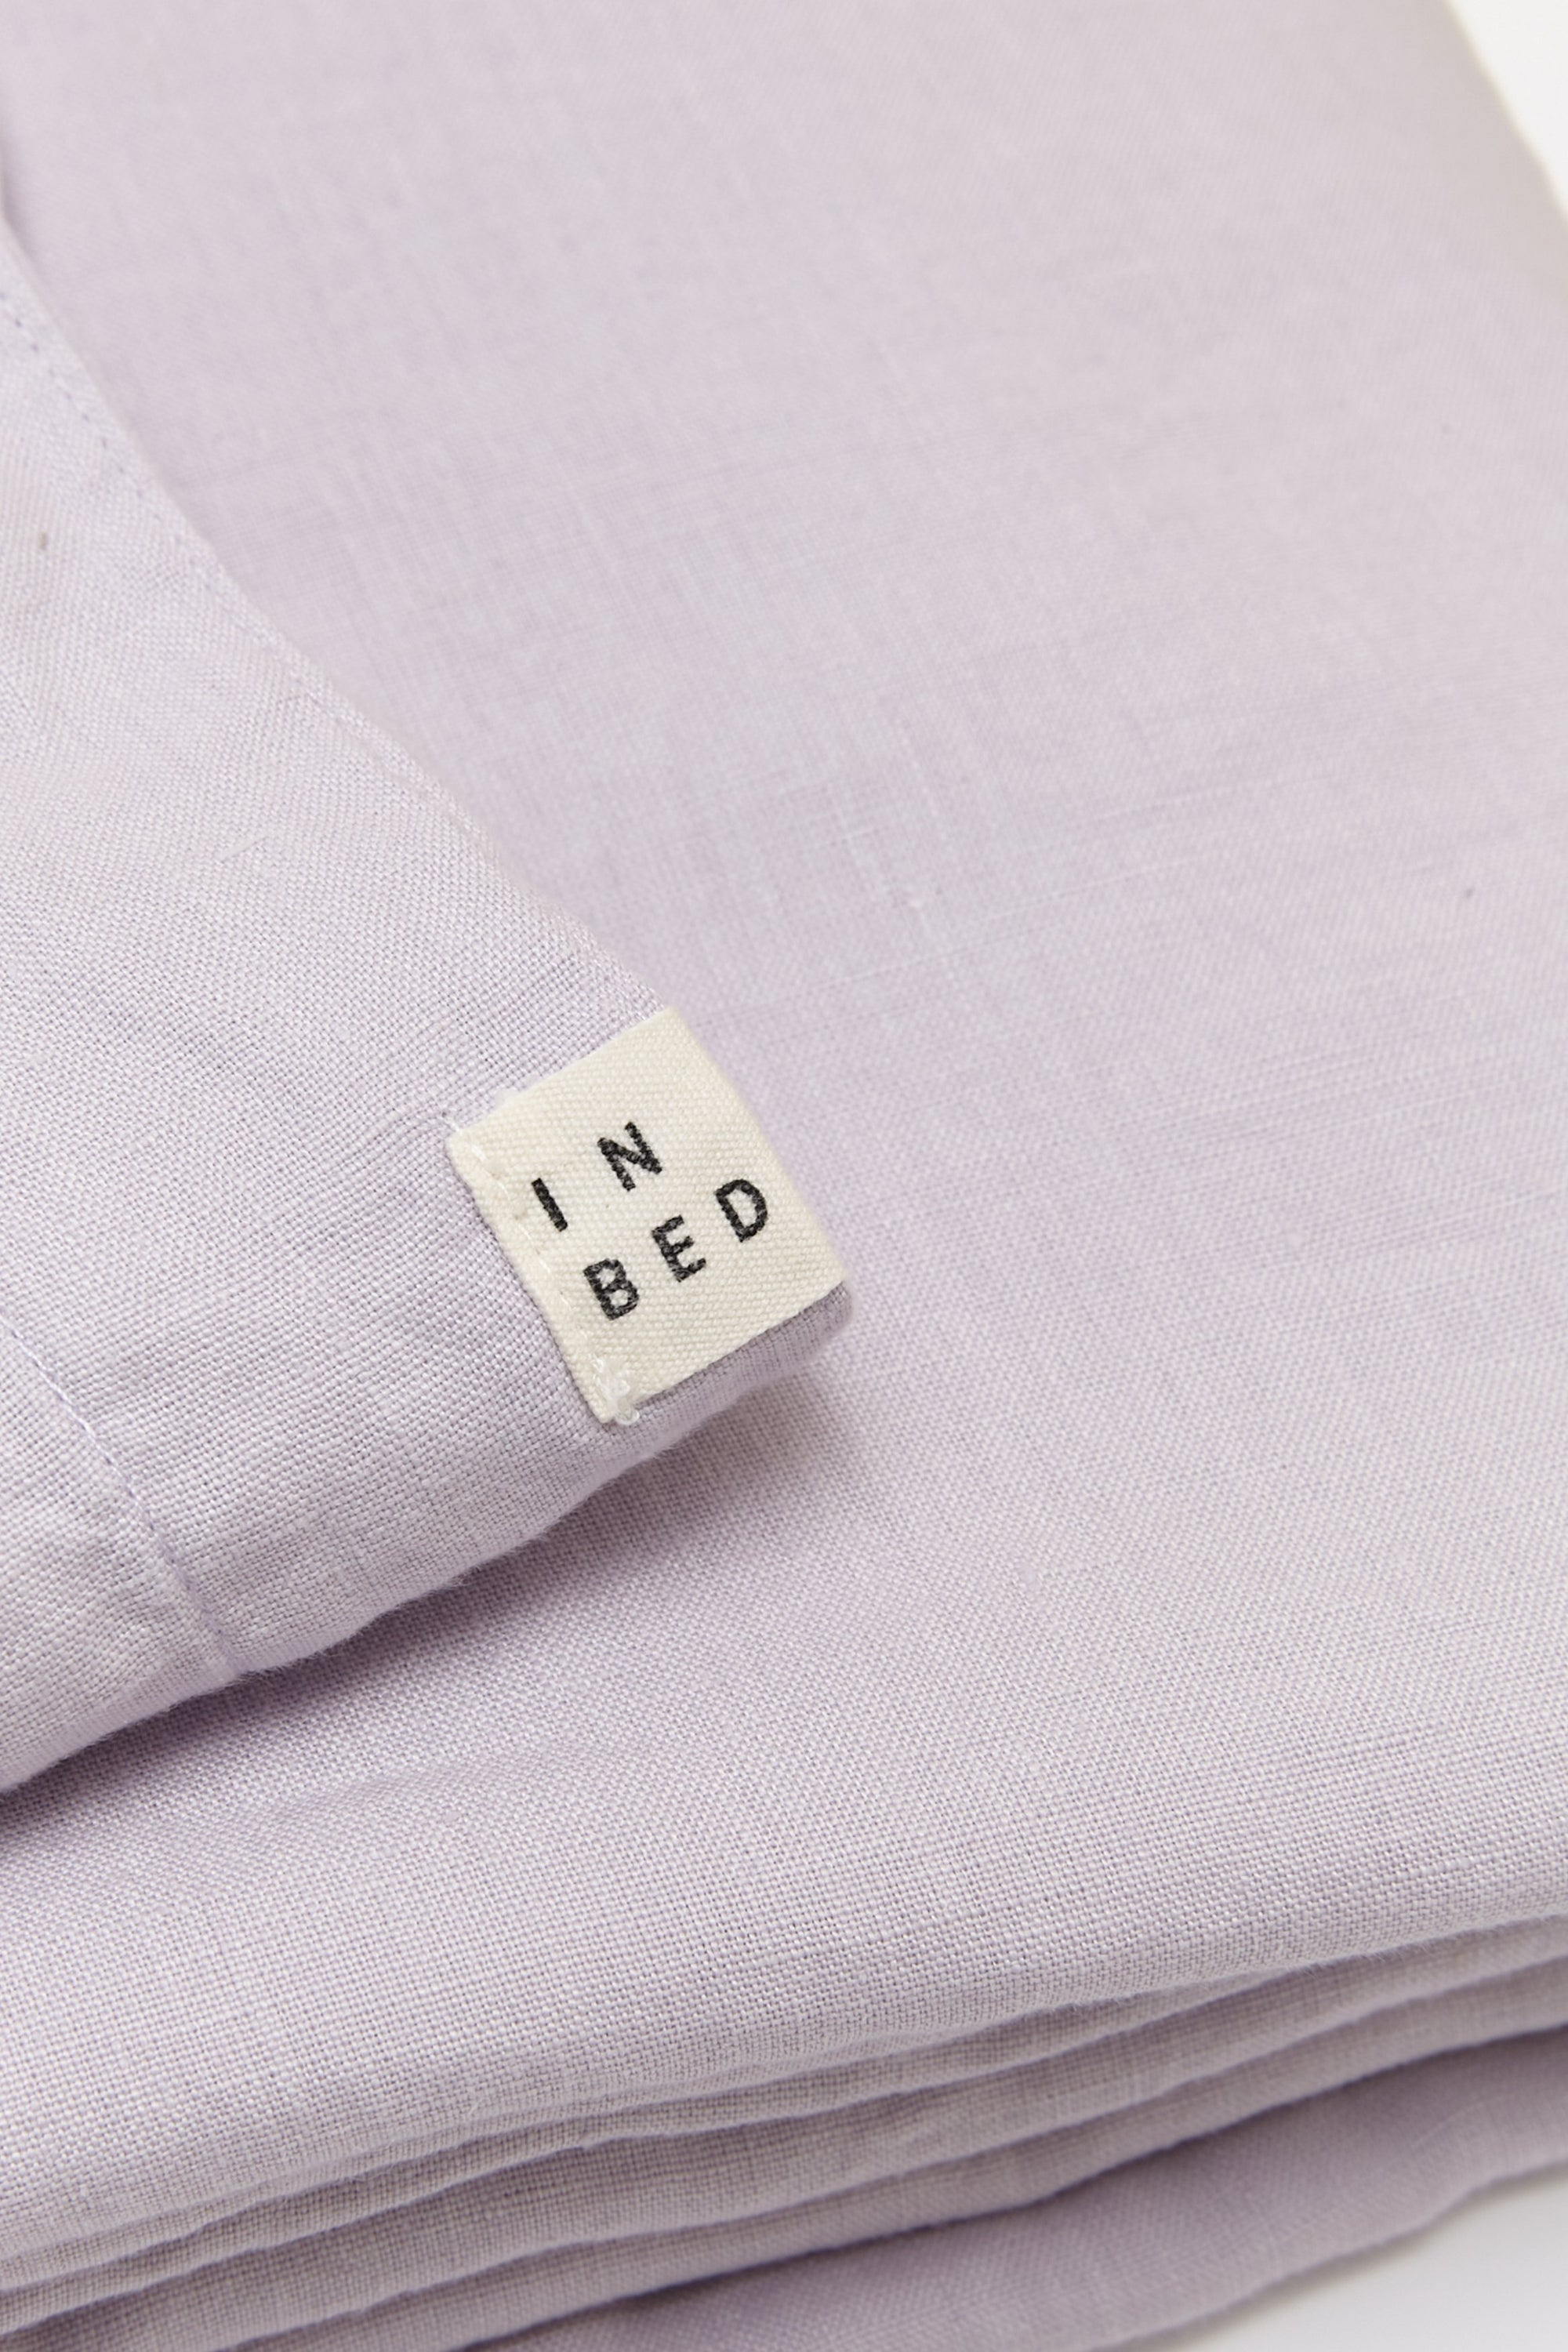 IN BED Linen Queen Duvet Cover